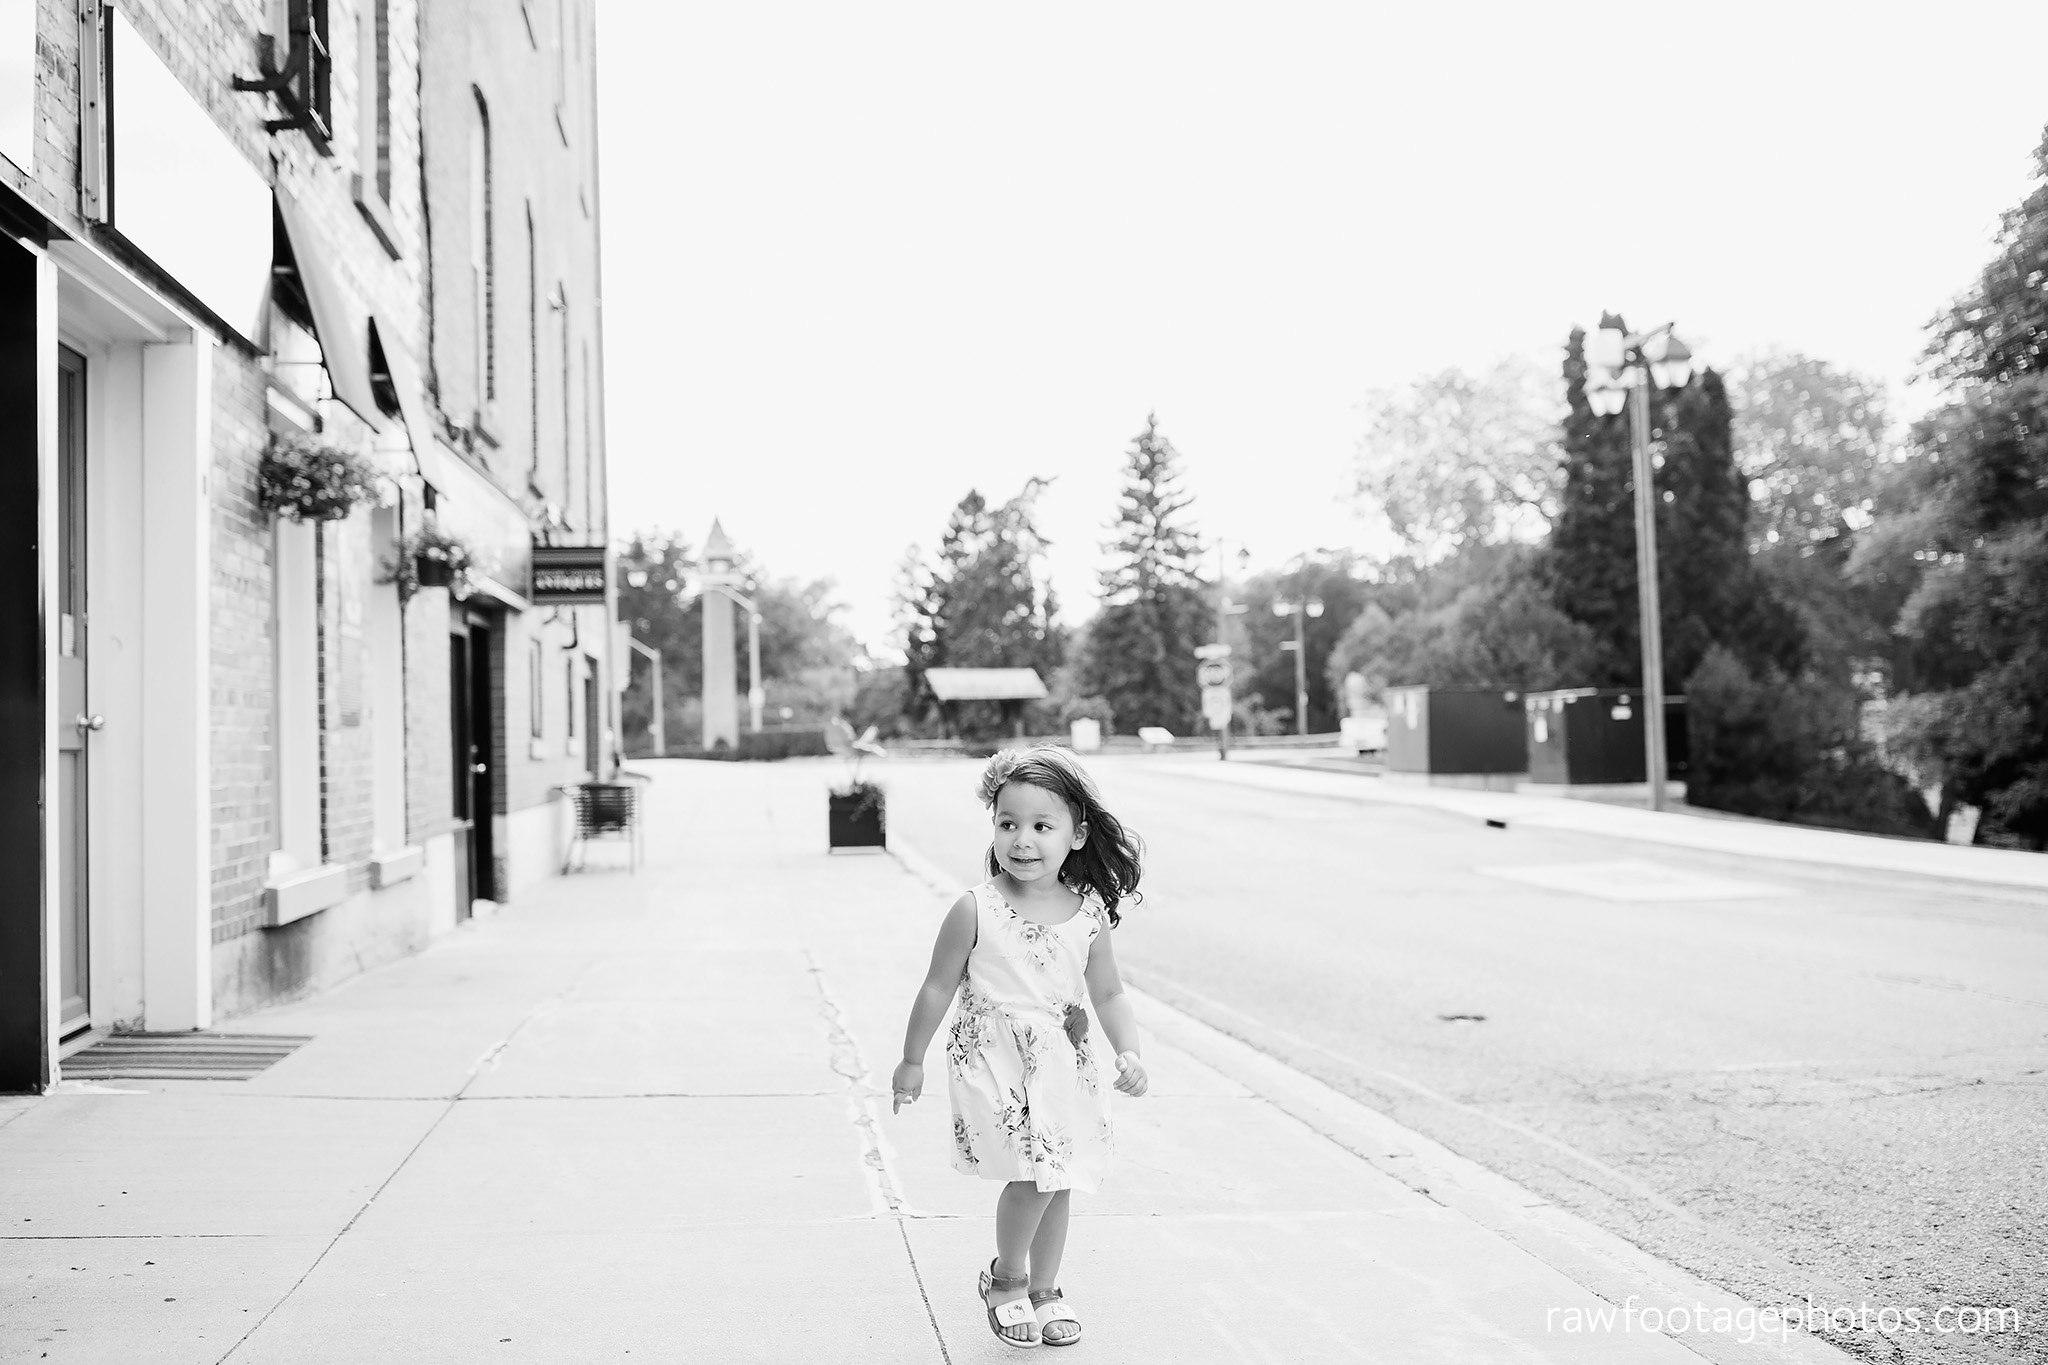 london_ontario_family_photographer-stratford_ontario_photographer-raw_footage_photography-lifestyle_photography-candid-golden_hour028.jpg